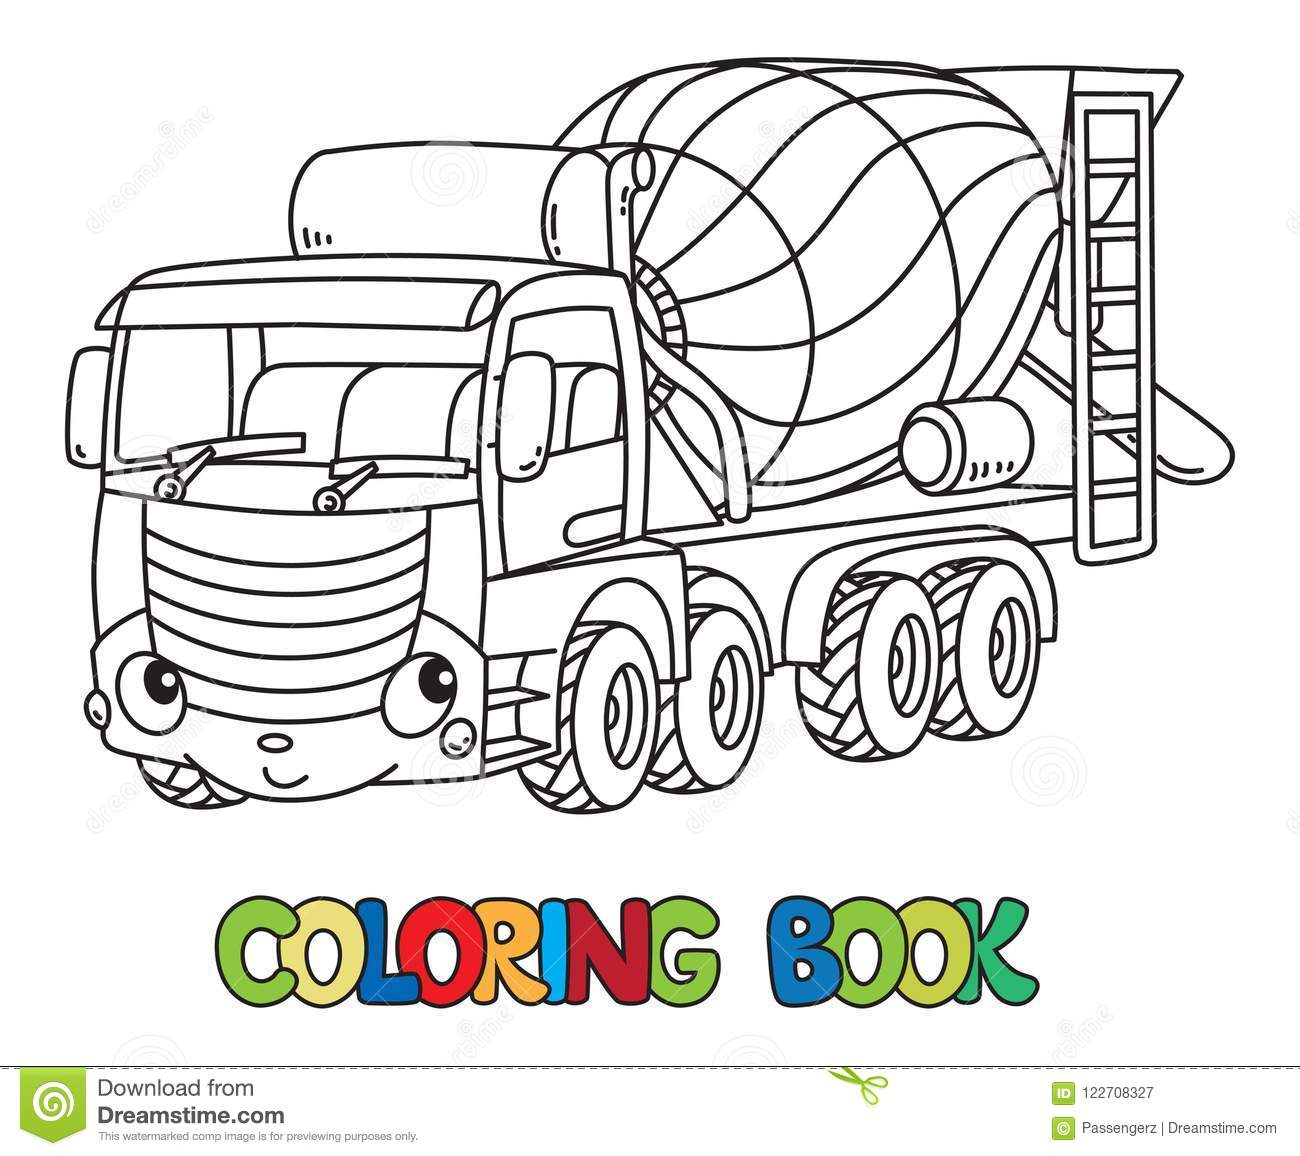 Funny Concrete Mixer Truck With Eyes Coloring Book Stock Vector ...